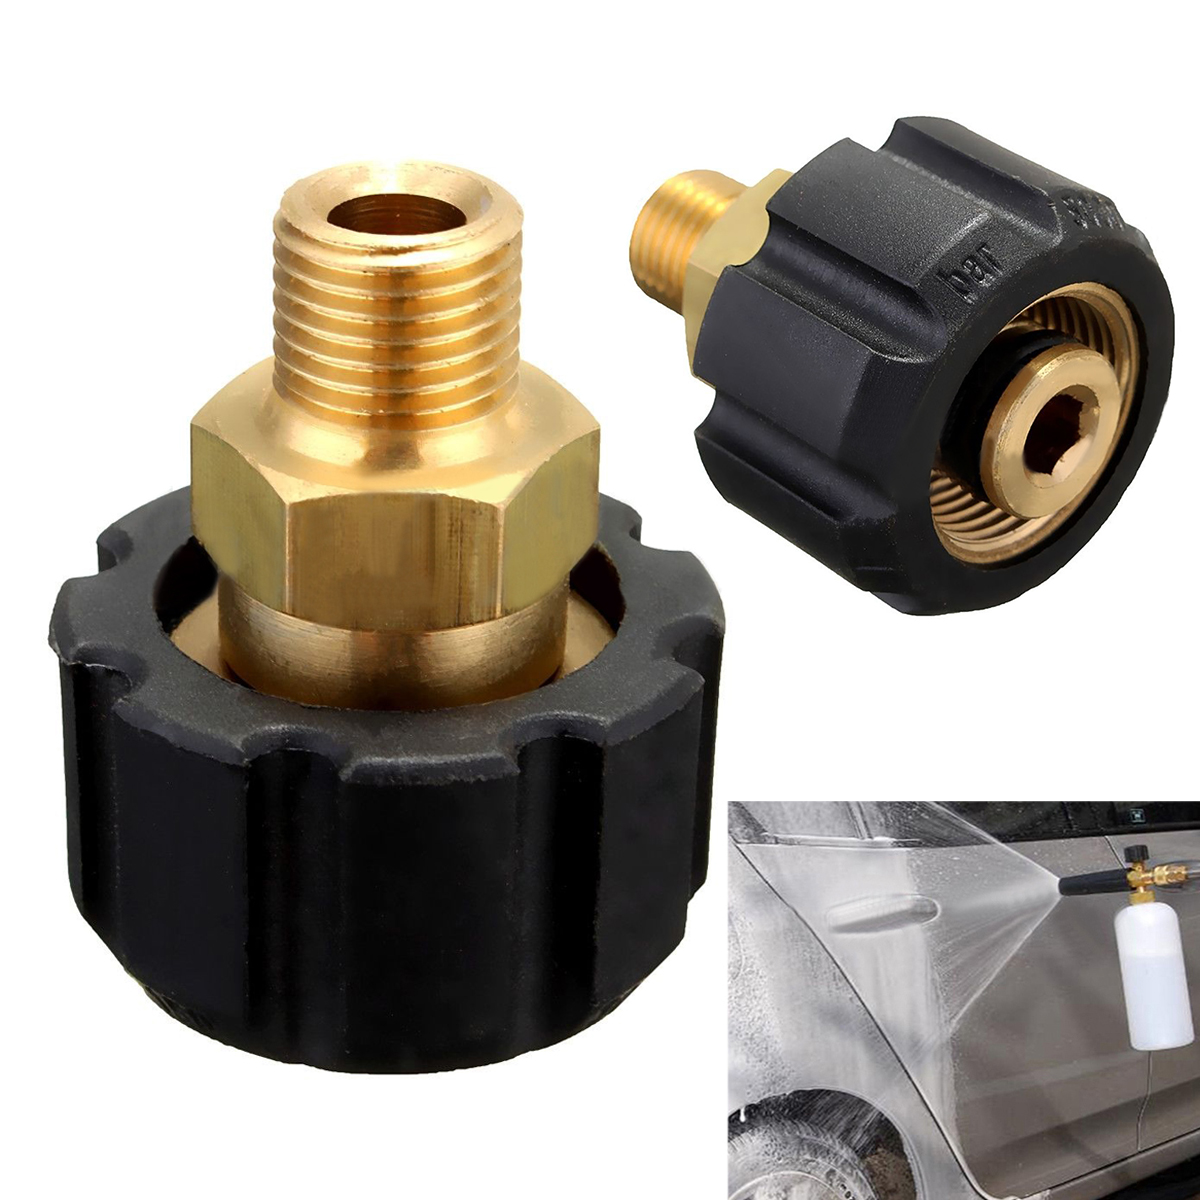 High Quality Car Pressure Washer Coupling Adaptor Connector Mayitr Spray Gun Fittings For HDS & HD M22F Snow Bubble Foam Lance high quality high quality car washer gun 35mpa 350bar 5000psi high pressure washer gun spray water gun